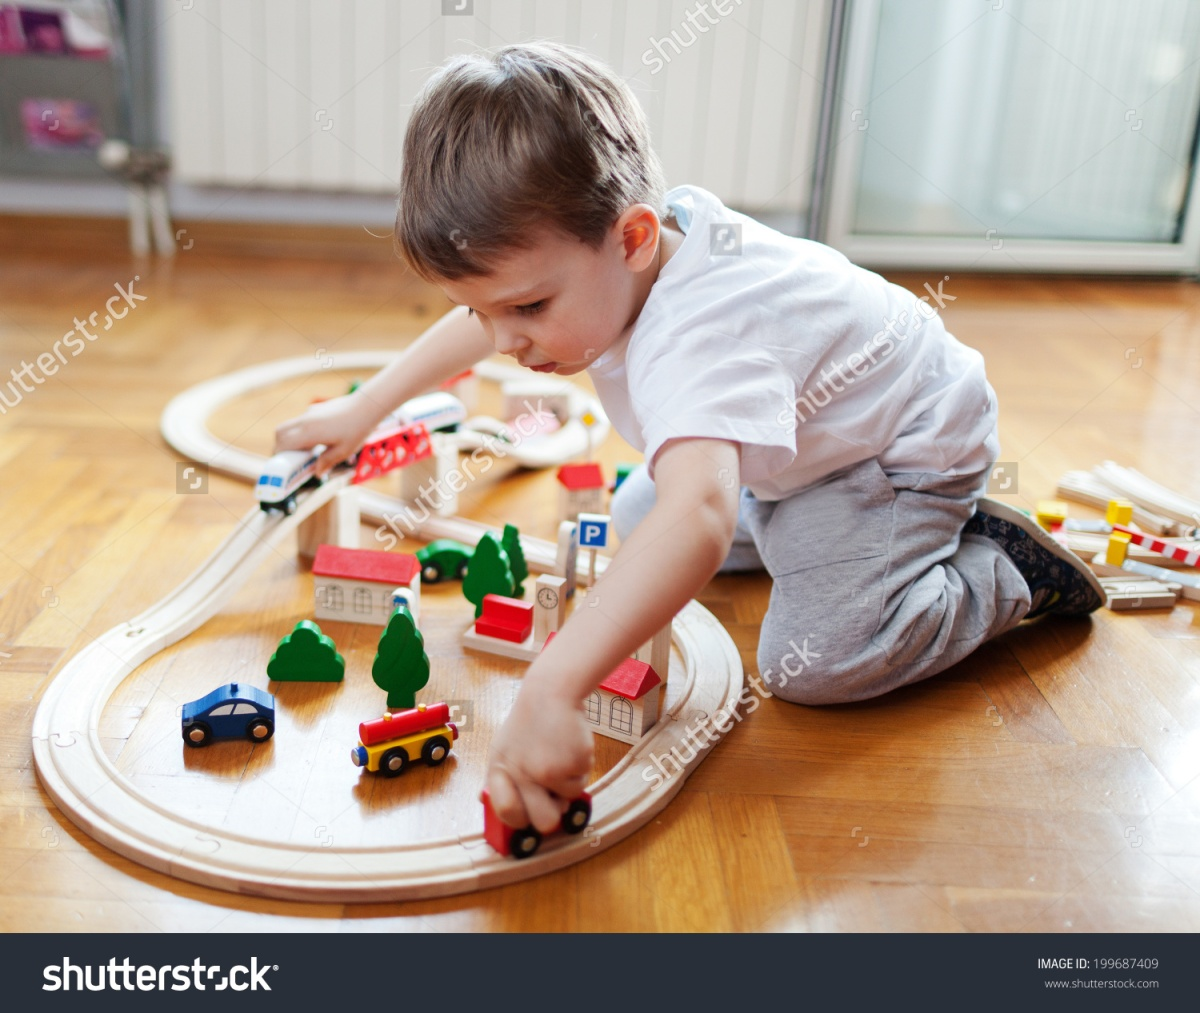 stock-photo-little-boy-playing-with-wooden-train-set-199687409